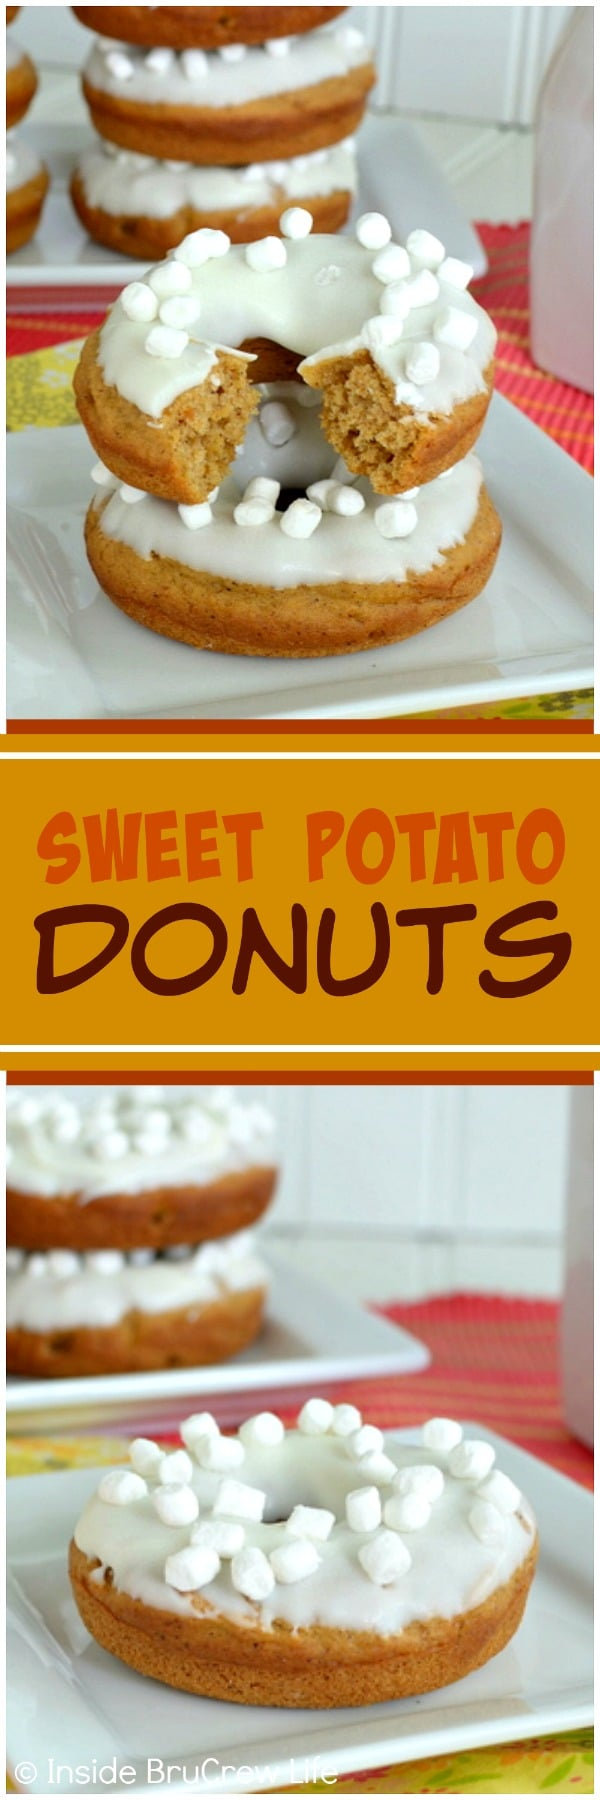 Sweet Potato Donuts - these easy baked donuts are loaded with spices and topped with white chocolate & marshmallow bits. Great fall breakfast recipe!